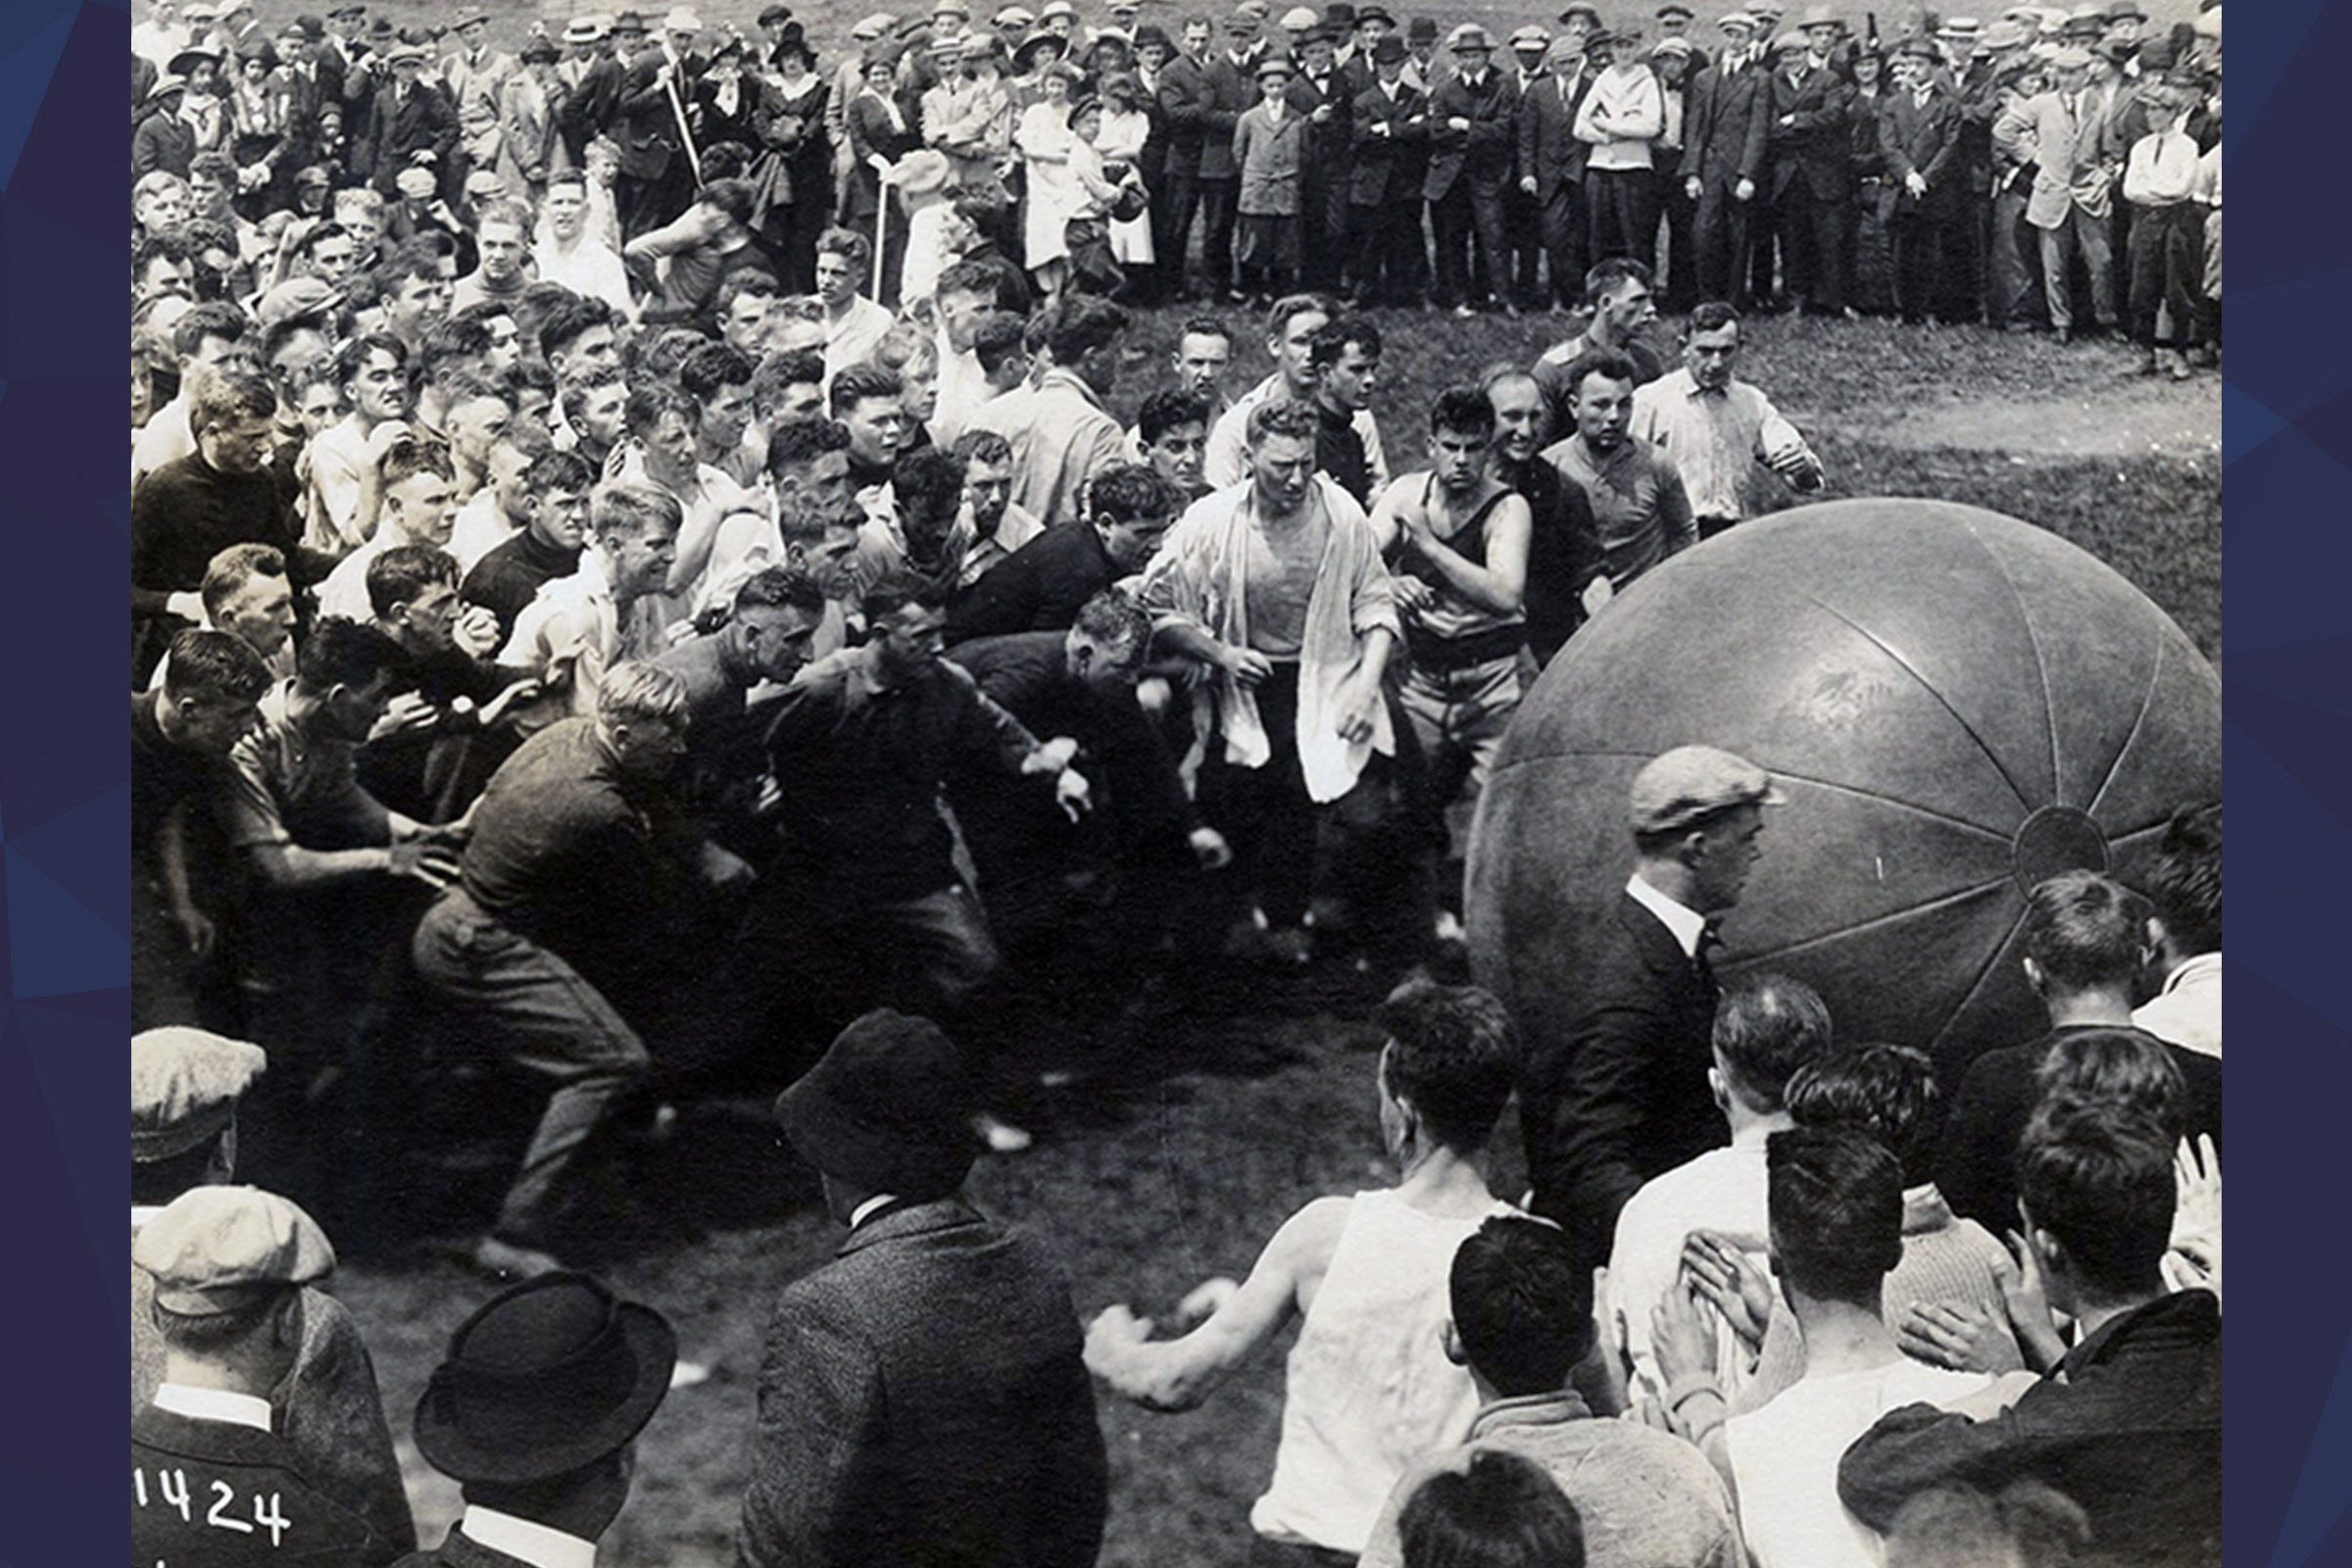 Black and White picture of vulcans in two teams pushing a giant ball